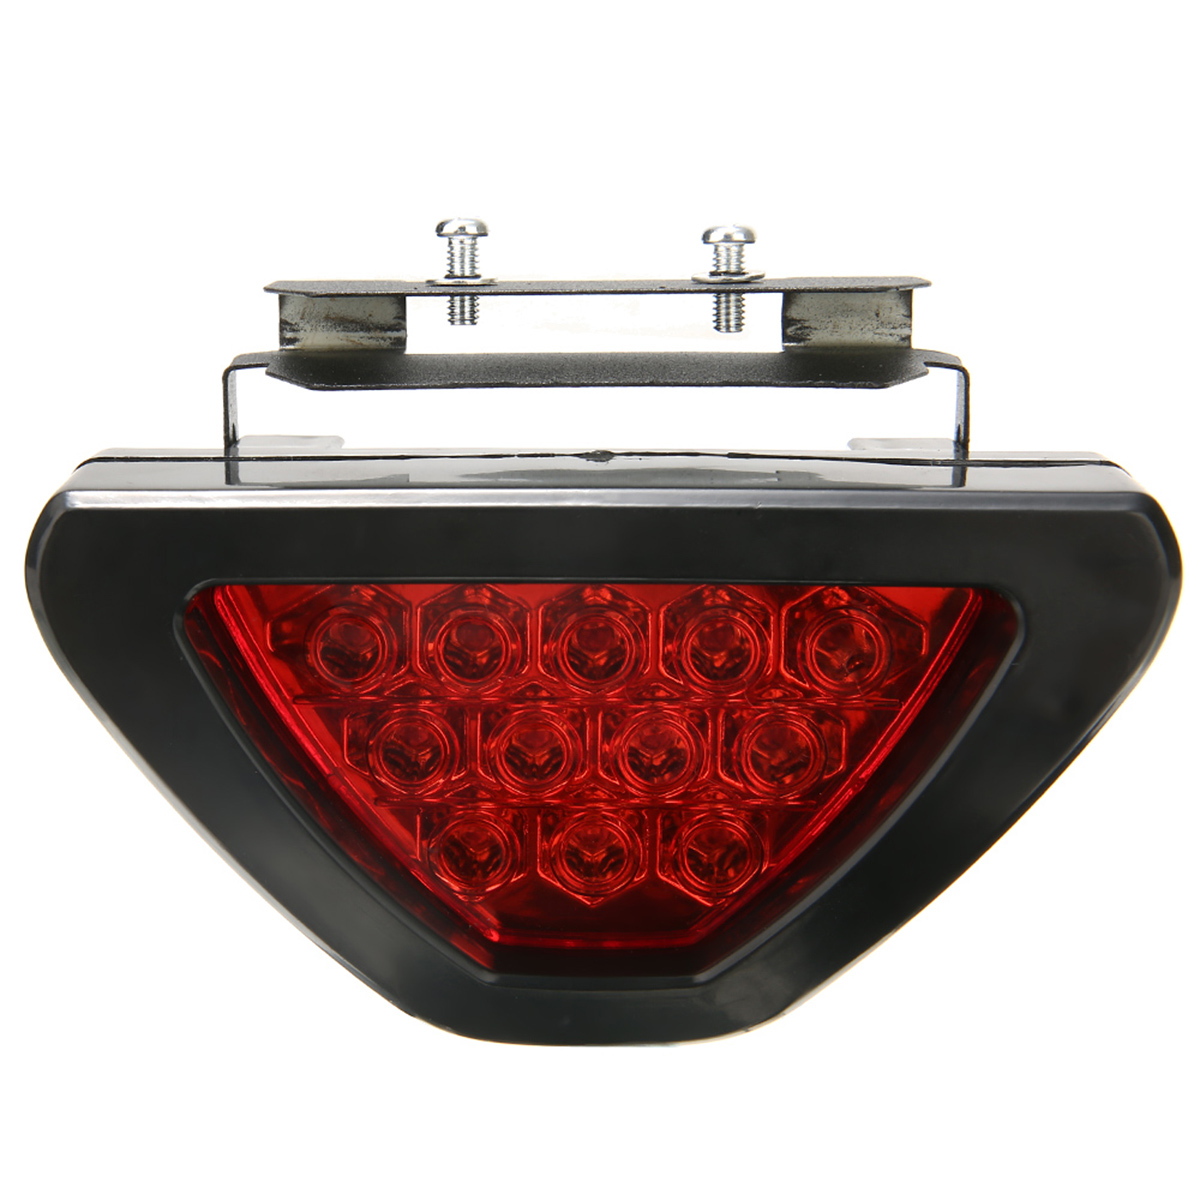 For Car Truck Brake Lights Universal F1 Style 12 LED Red Rear Tail Third Brake Stop Light Safety Signal Lamp